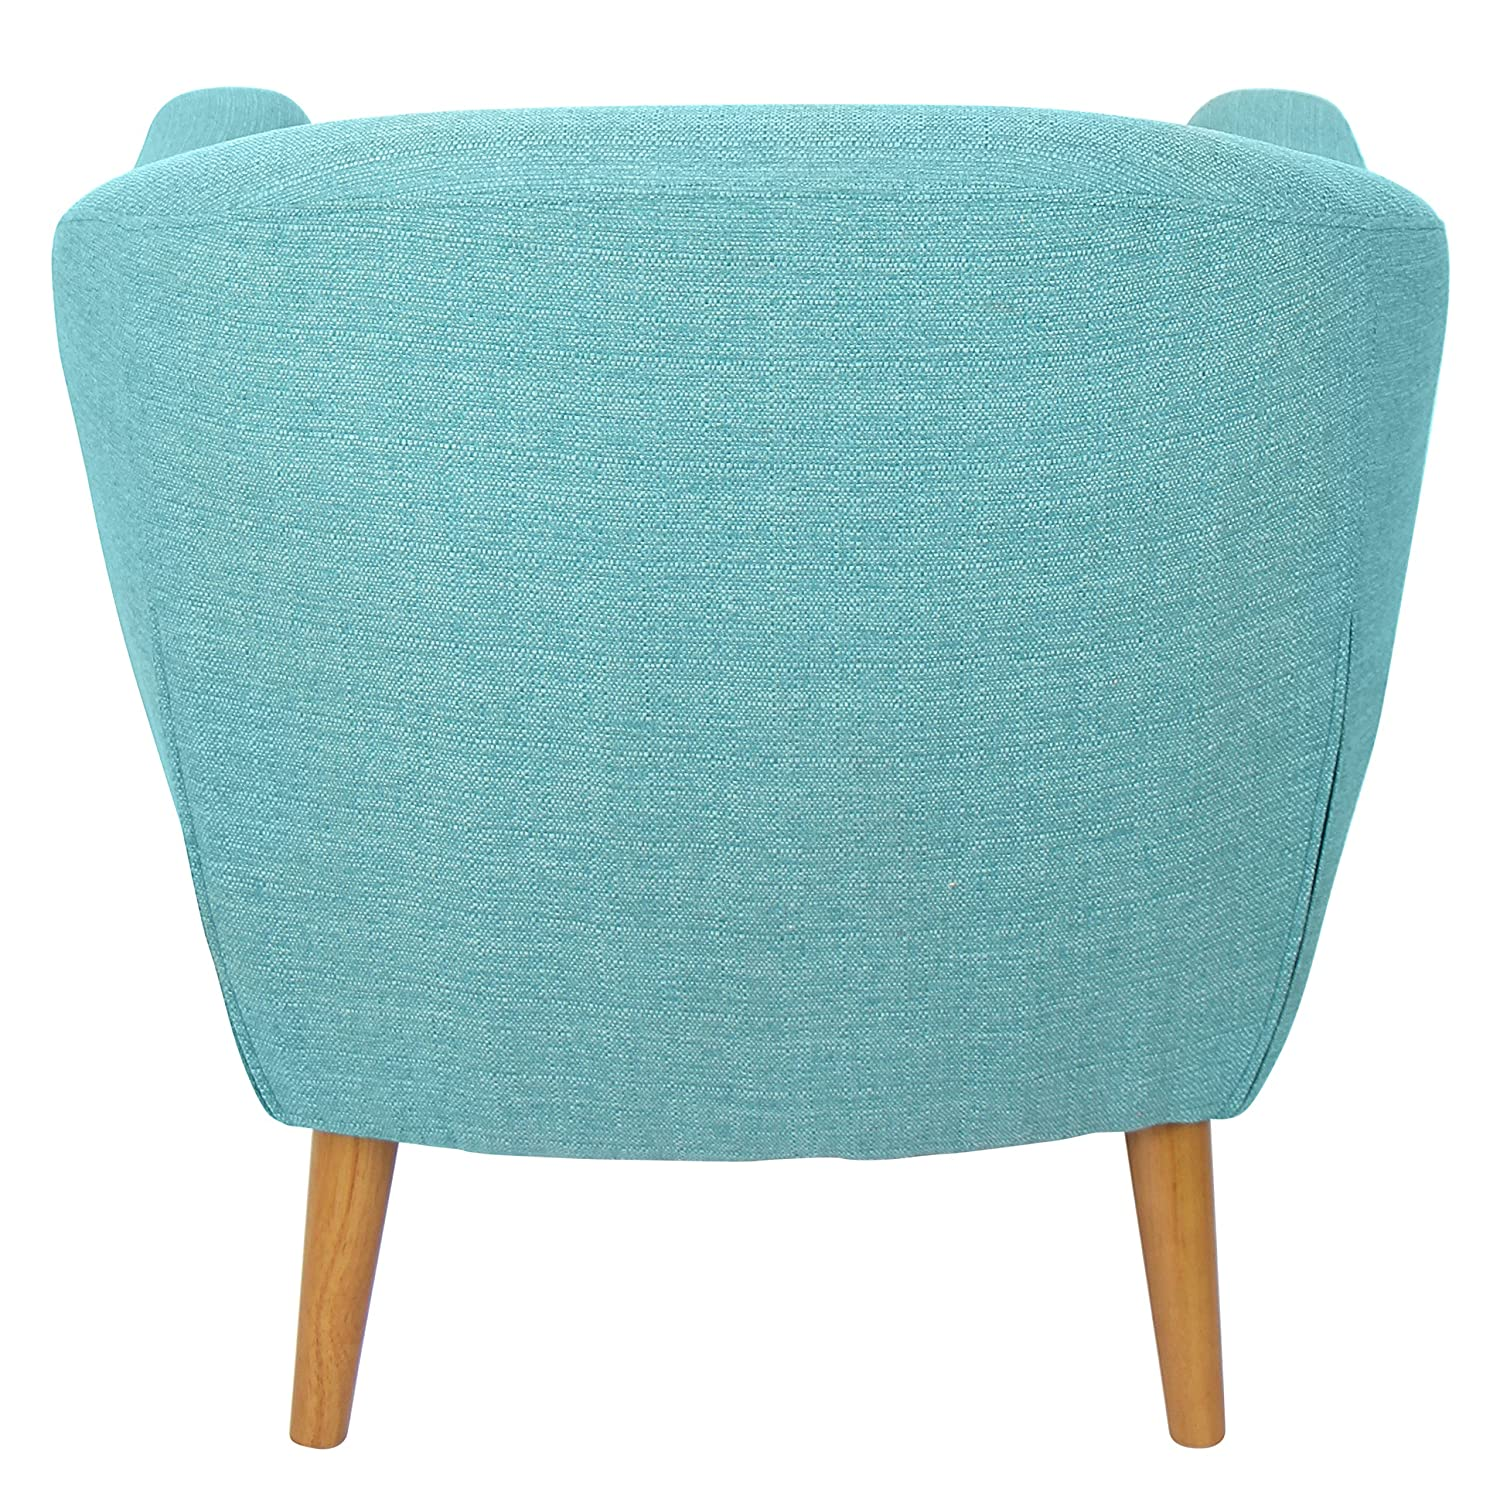 Teal Chair Amazoncom Lumisource Rockwell Mid Century Modern Accent Counter